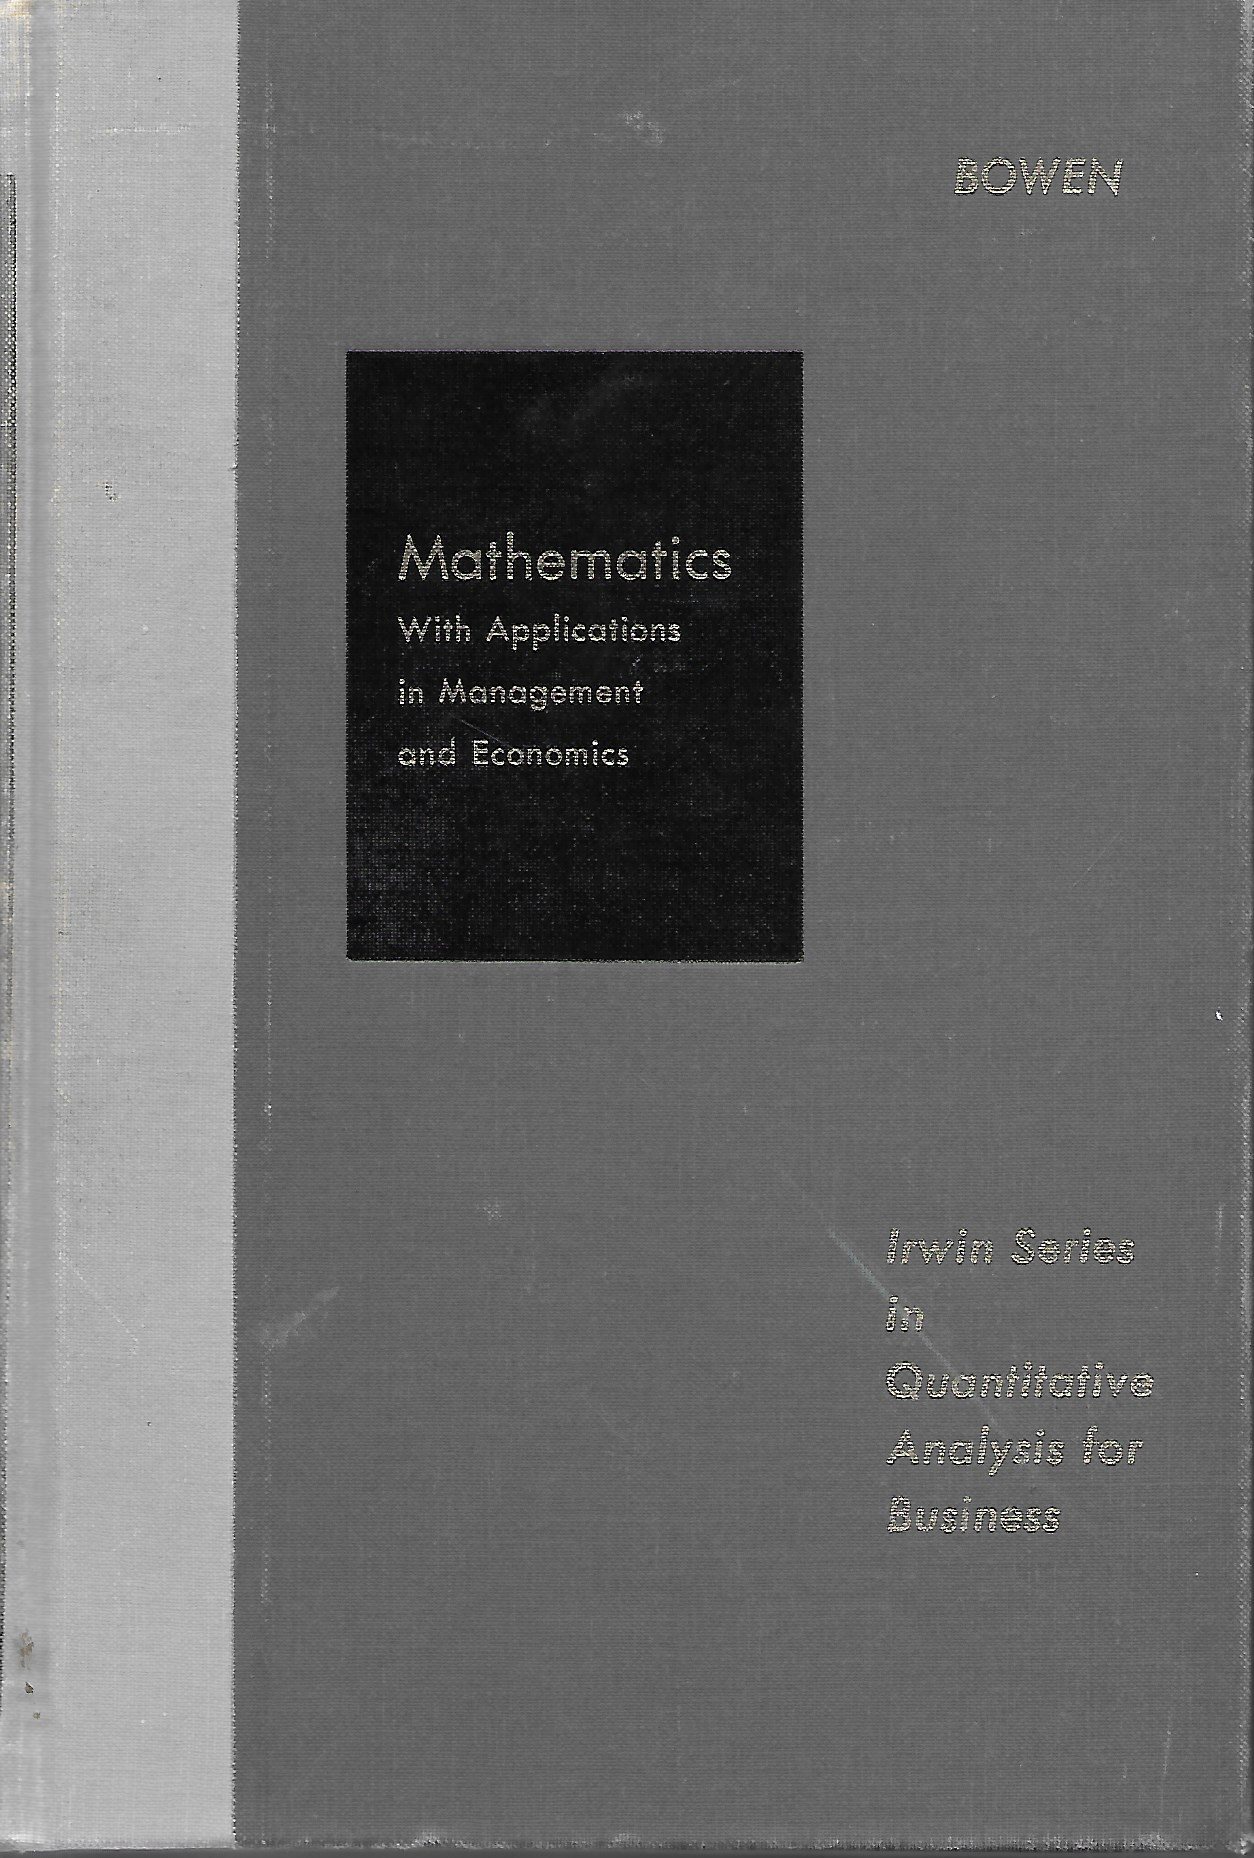 Image for Mathematics With Applications In Management And Economics Irwin Series in Quantitative Analysis for Business